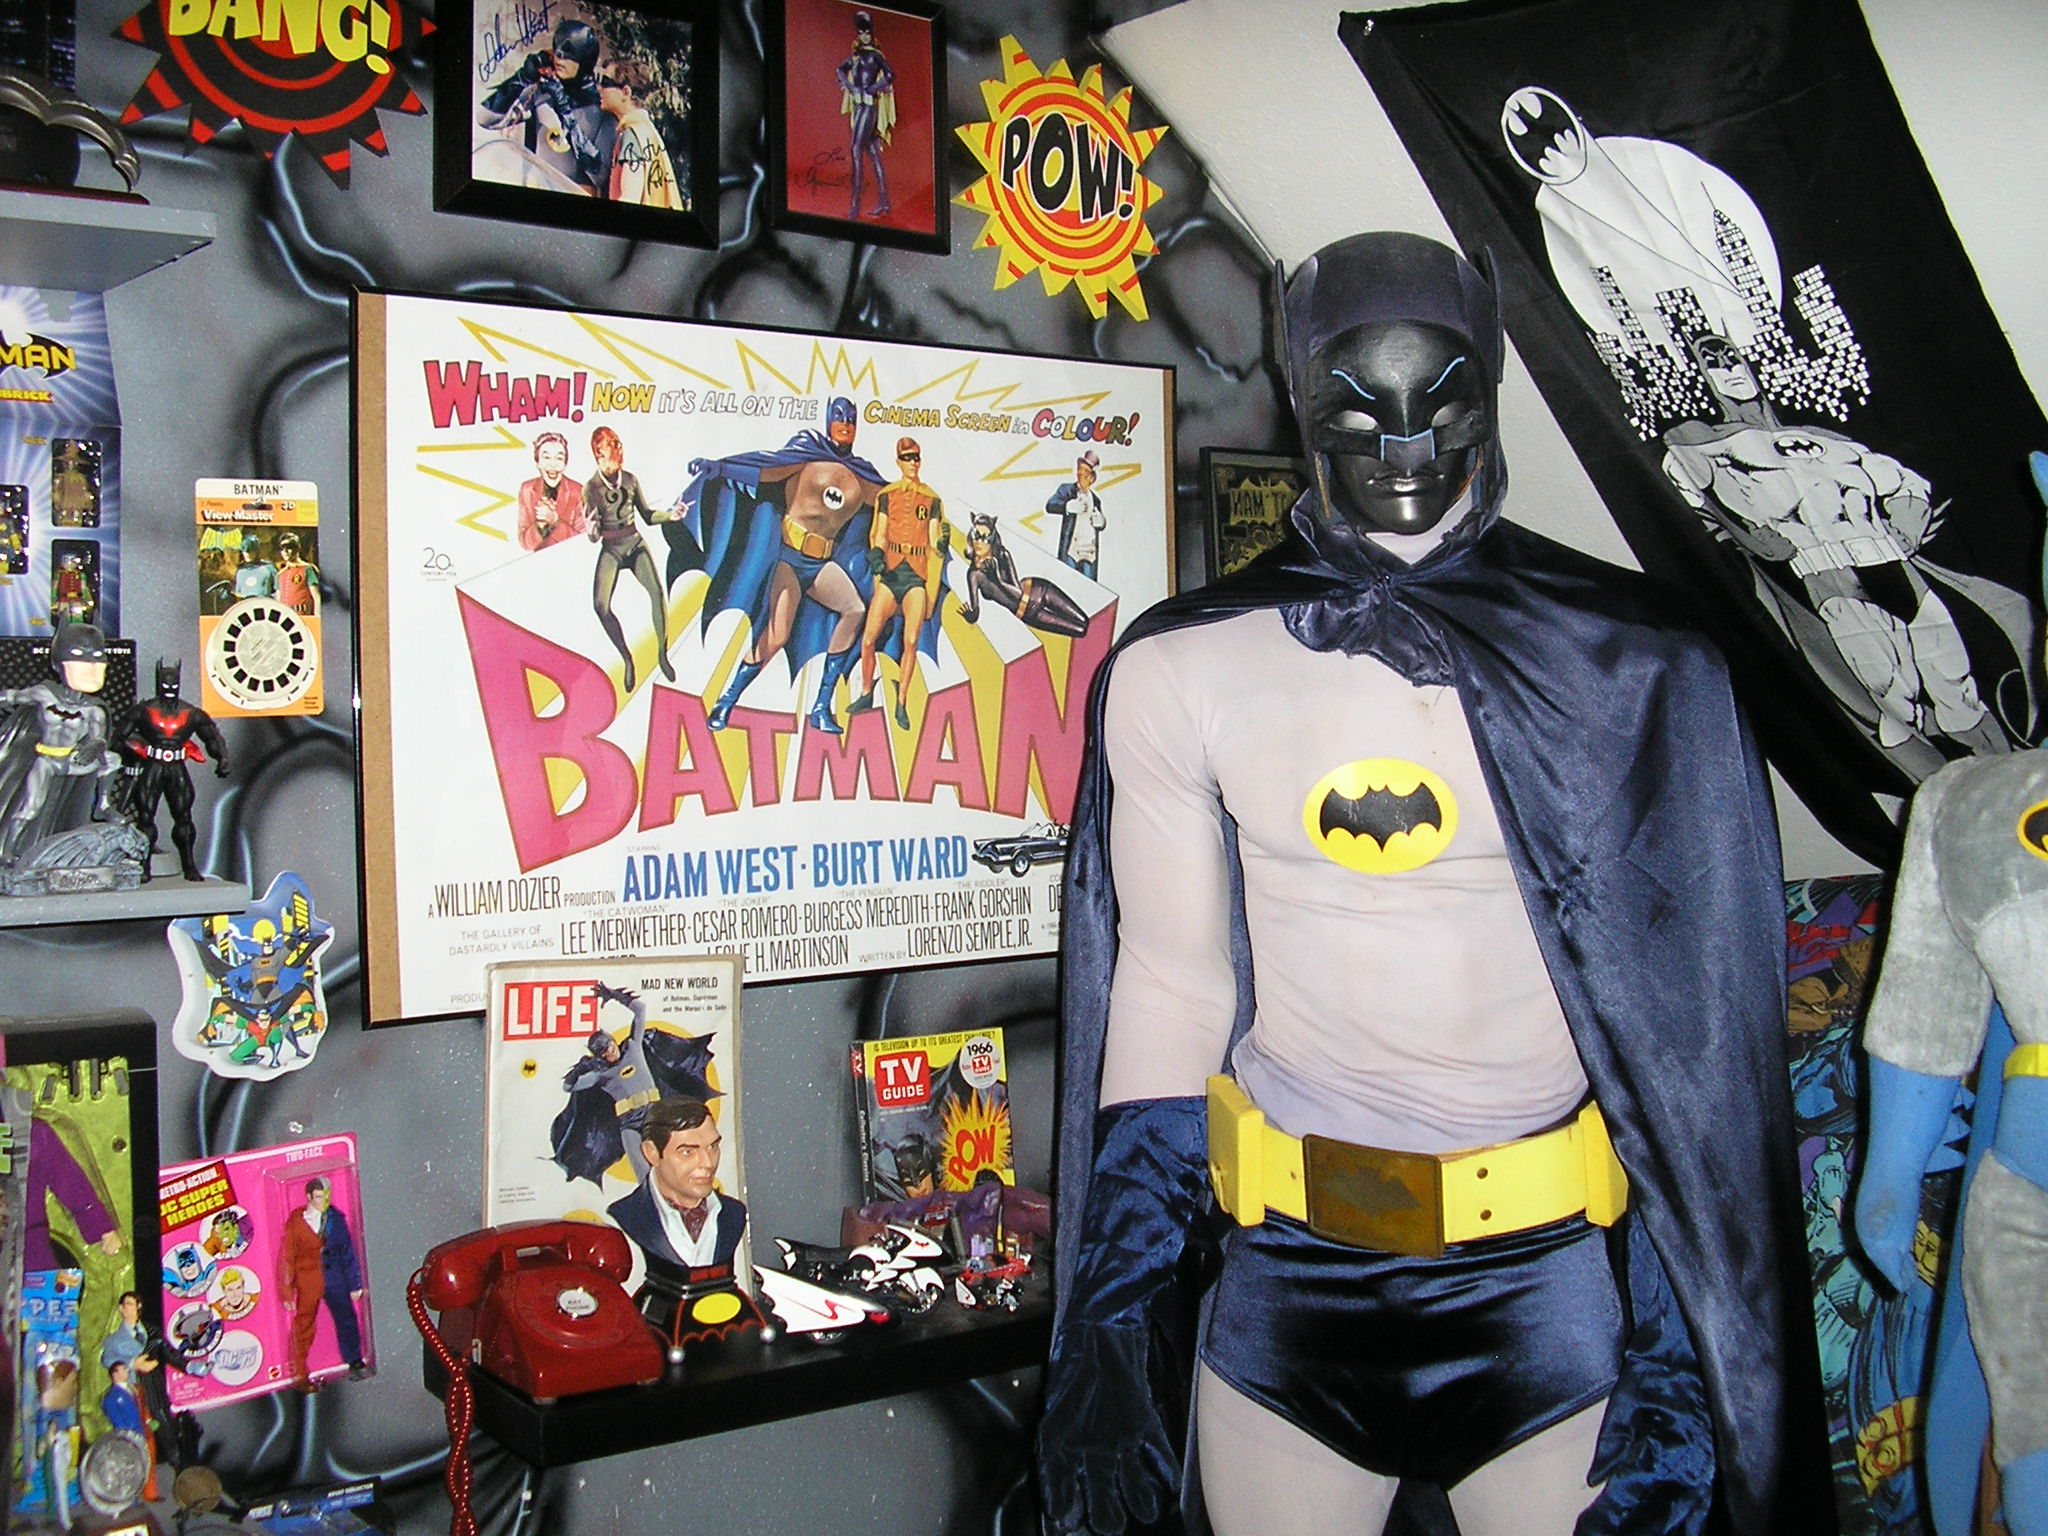 Hall of Heroes Superhero Museum - 58005 CR 105Elkhart, IN 46517574.522.1187